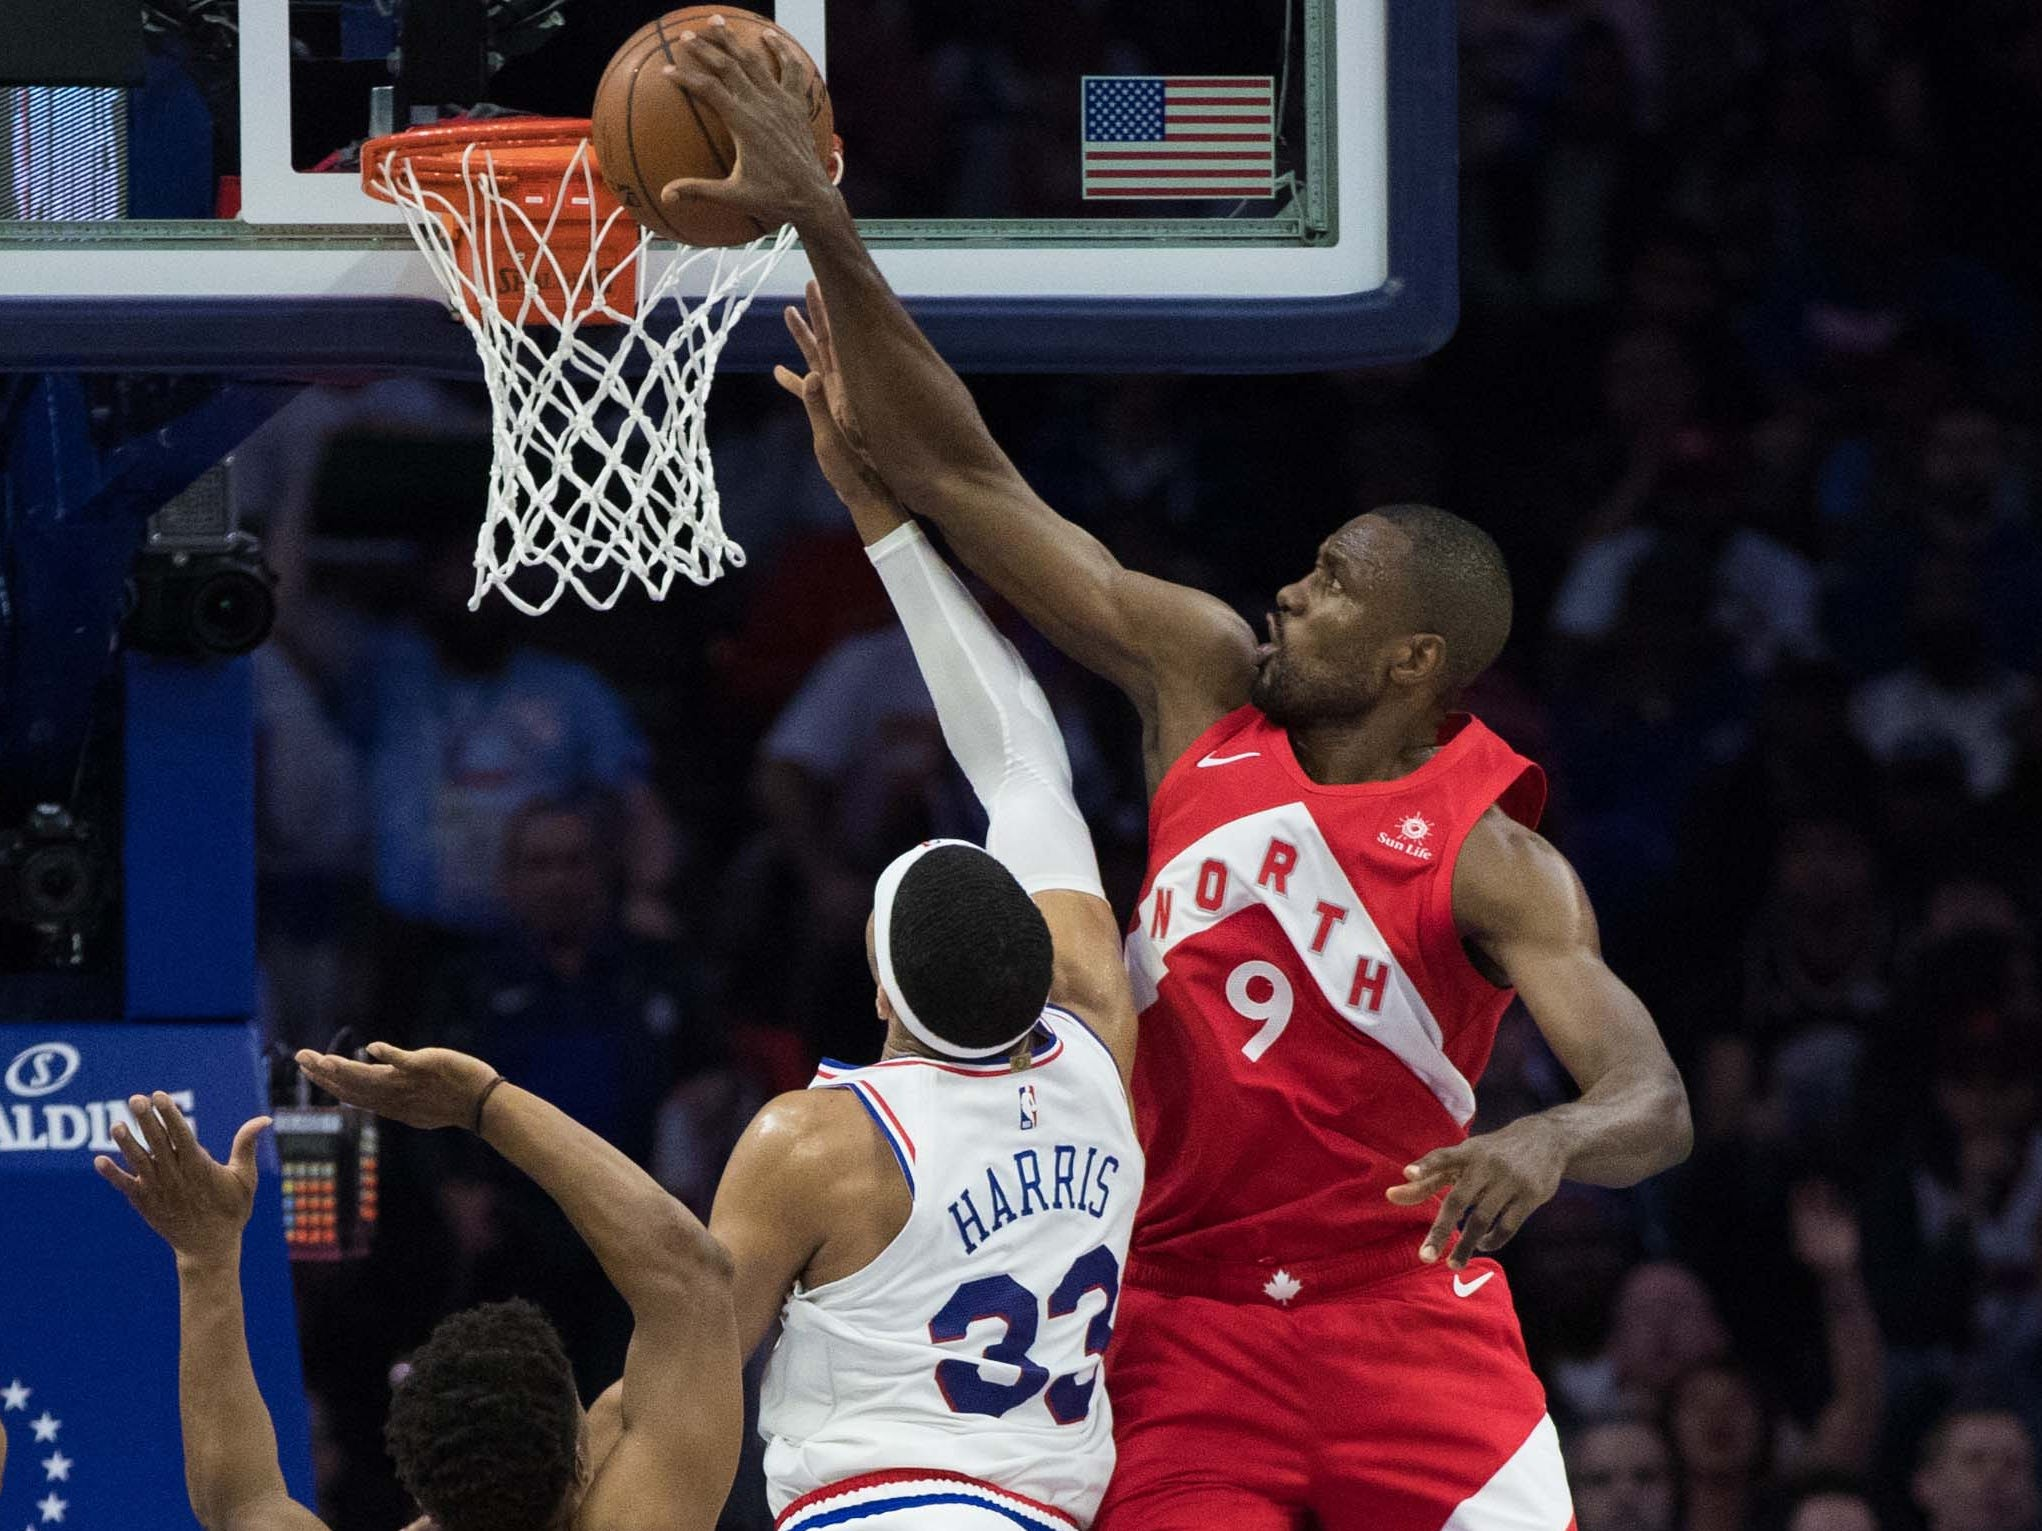 May 5: Raptors defender Serge Ibaka (9) blocks the shot attempt by 76ers forward Tobias Harris (33) during Game 4.